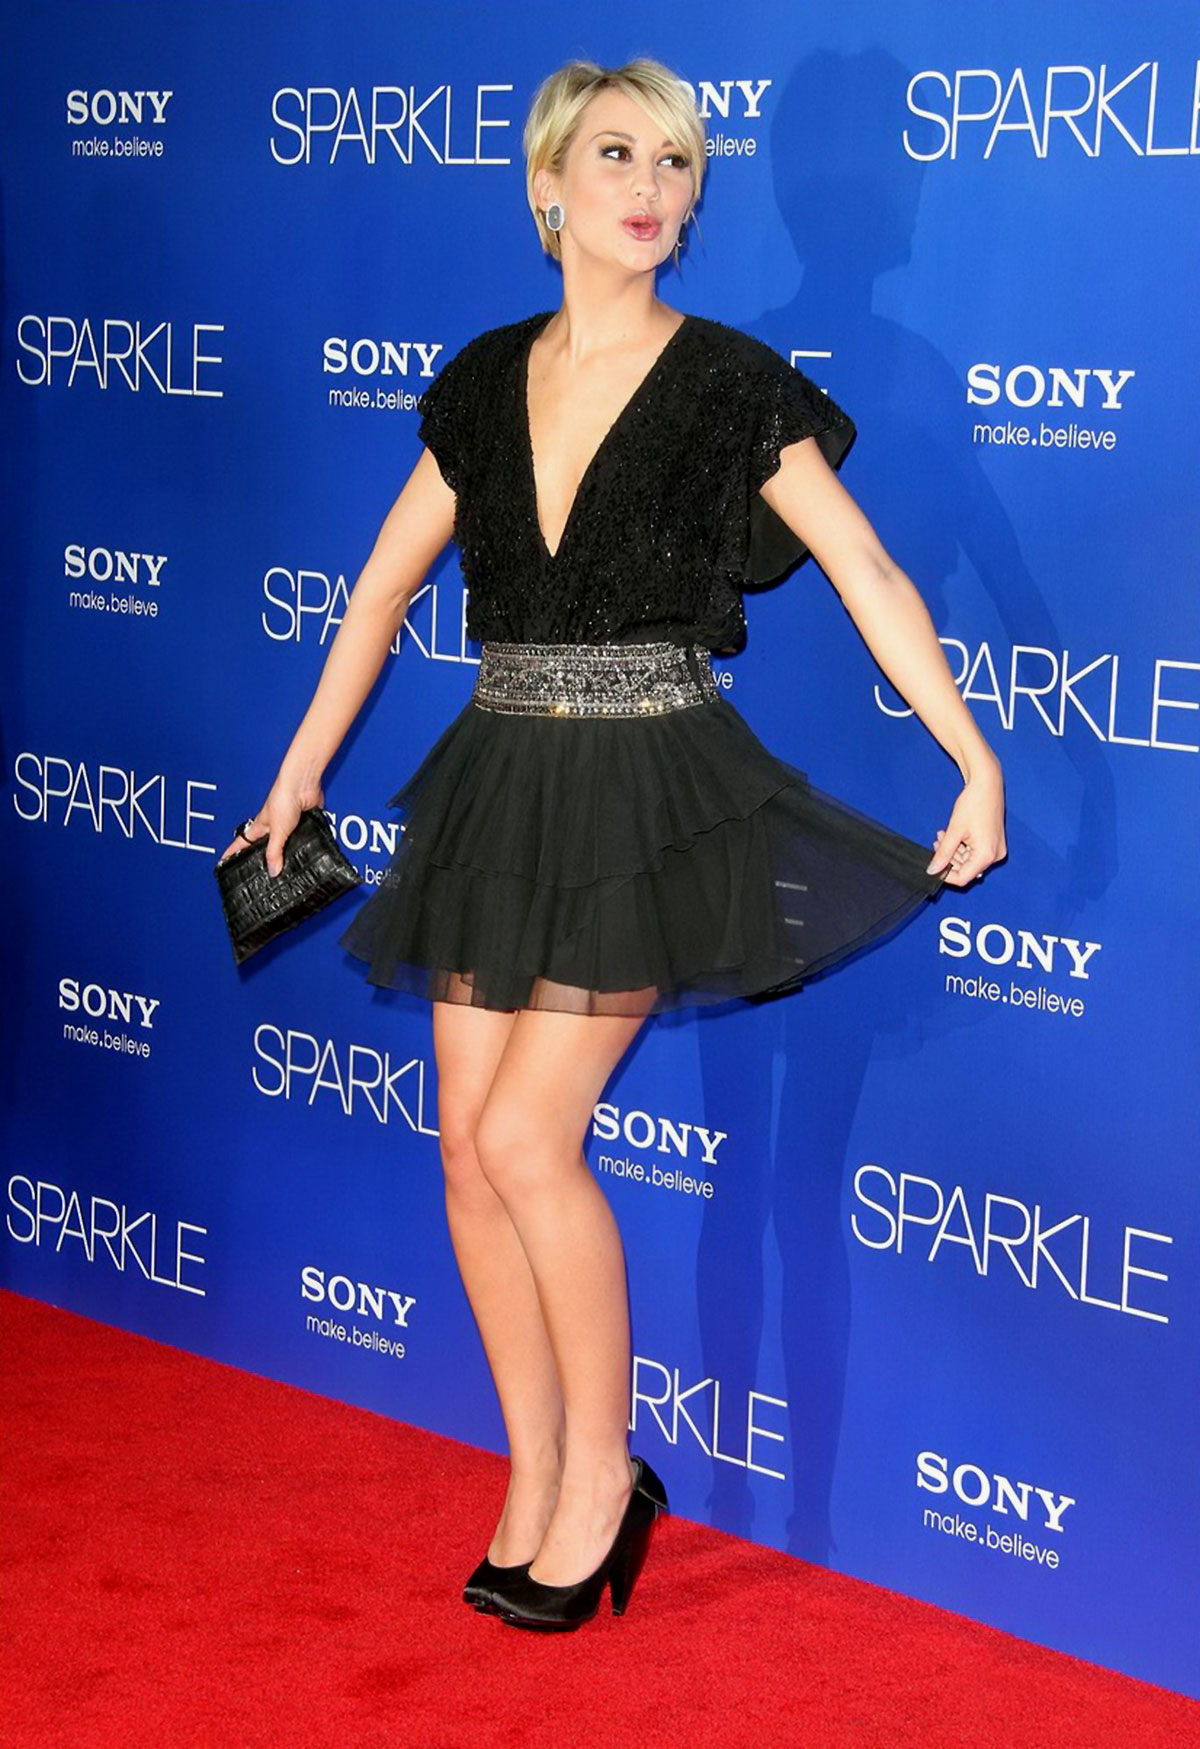 CHELSEA KANE at Sparkle Premiere in Hollywood  HawtCelebs